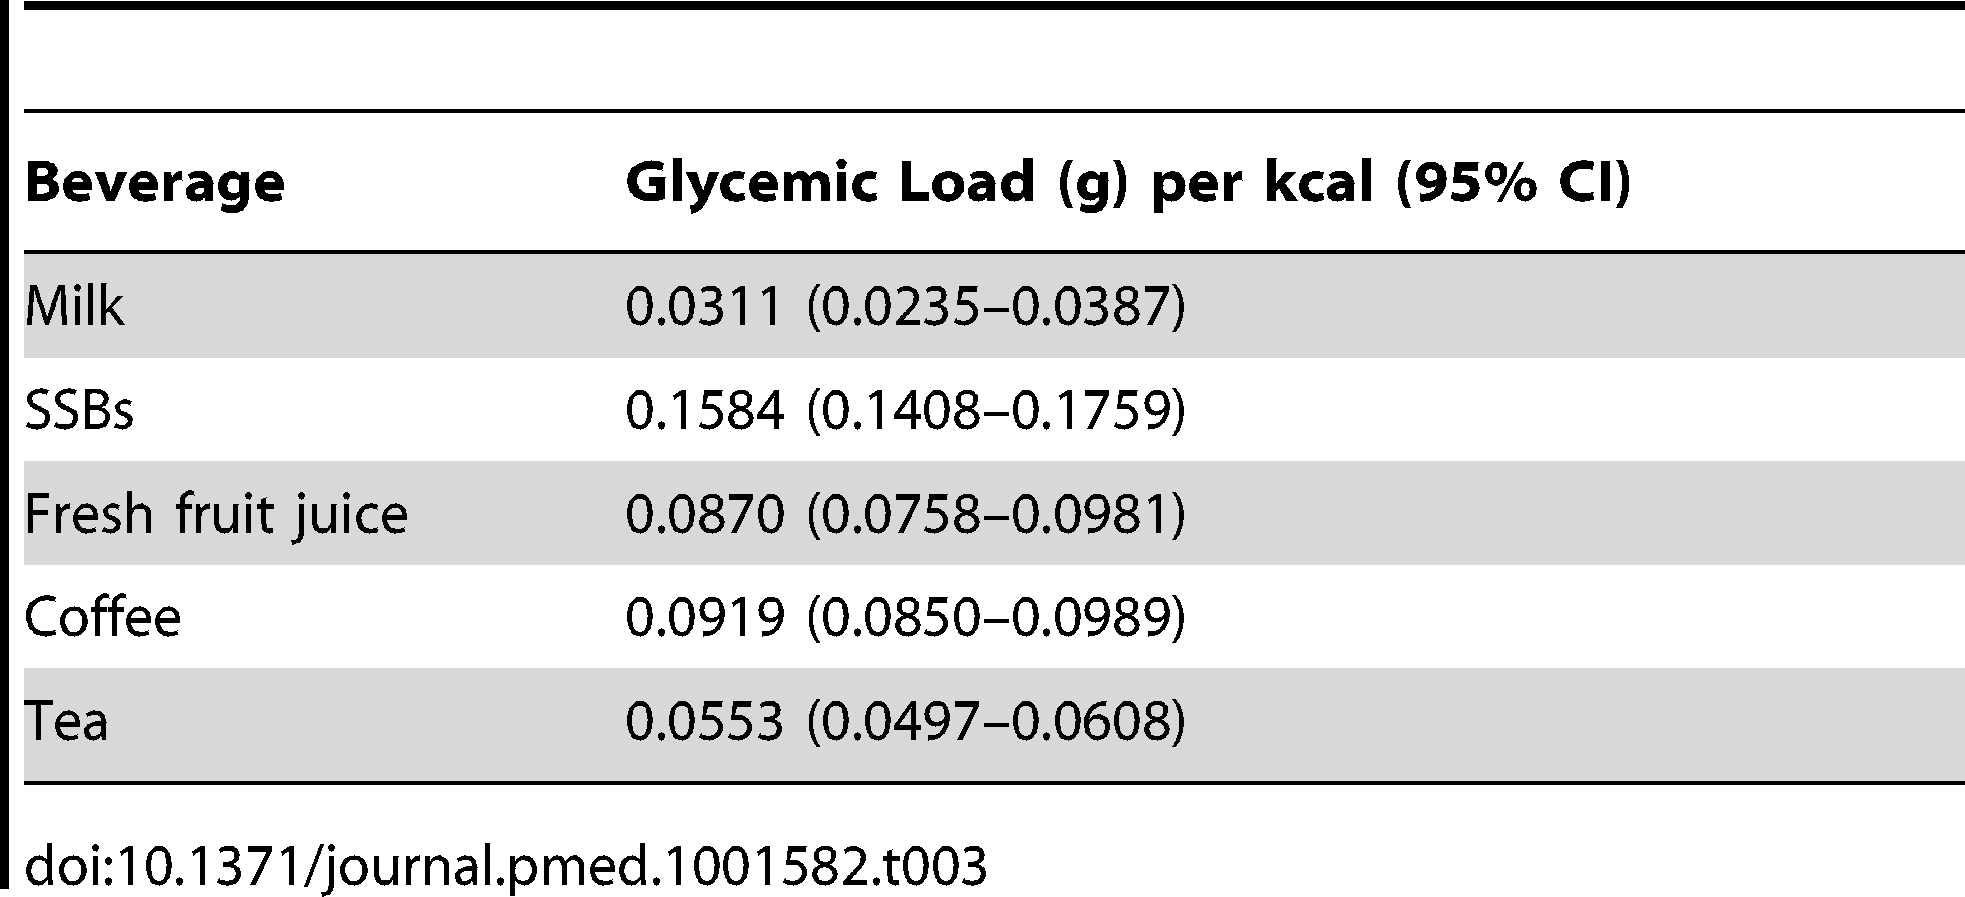 """Effective glycemic load (g) per kcal when accounting for typical serving sizes (g) and energy content (kcals) of beverages <em class=""""ref"""">[45]</em>."""